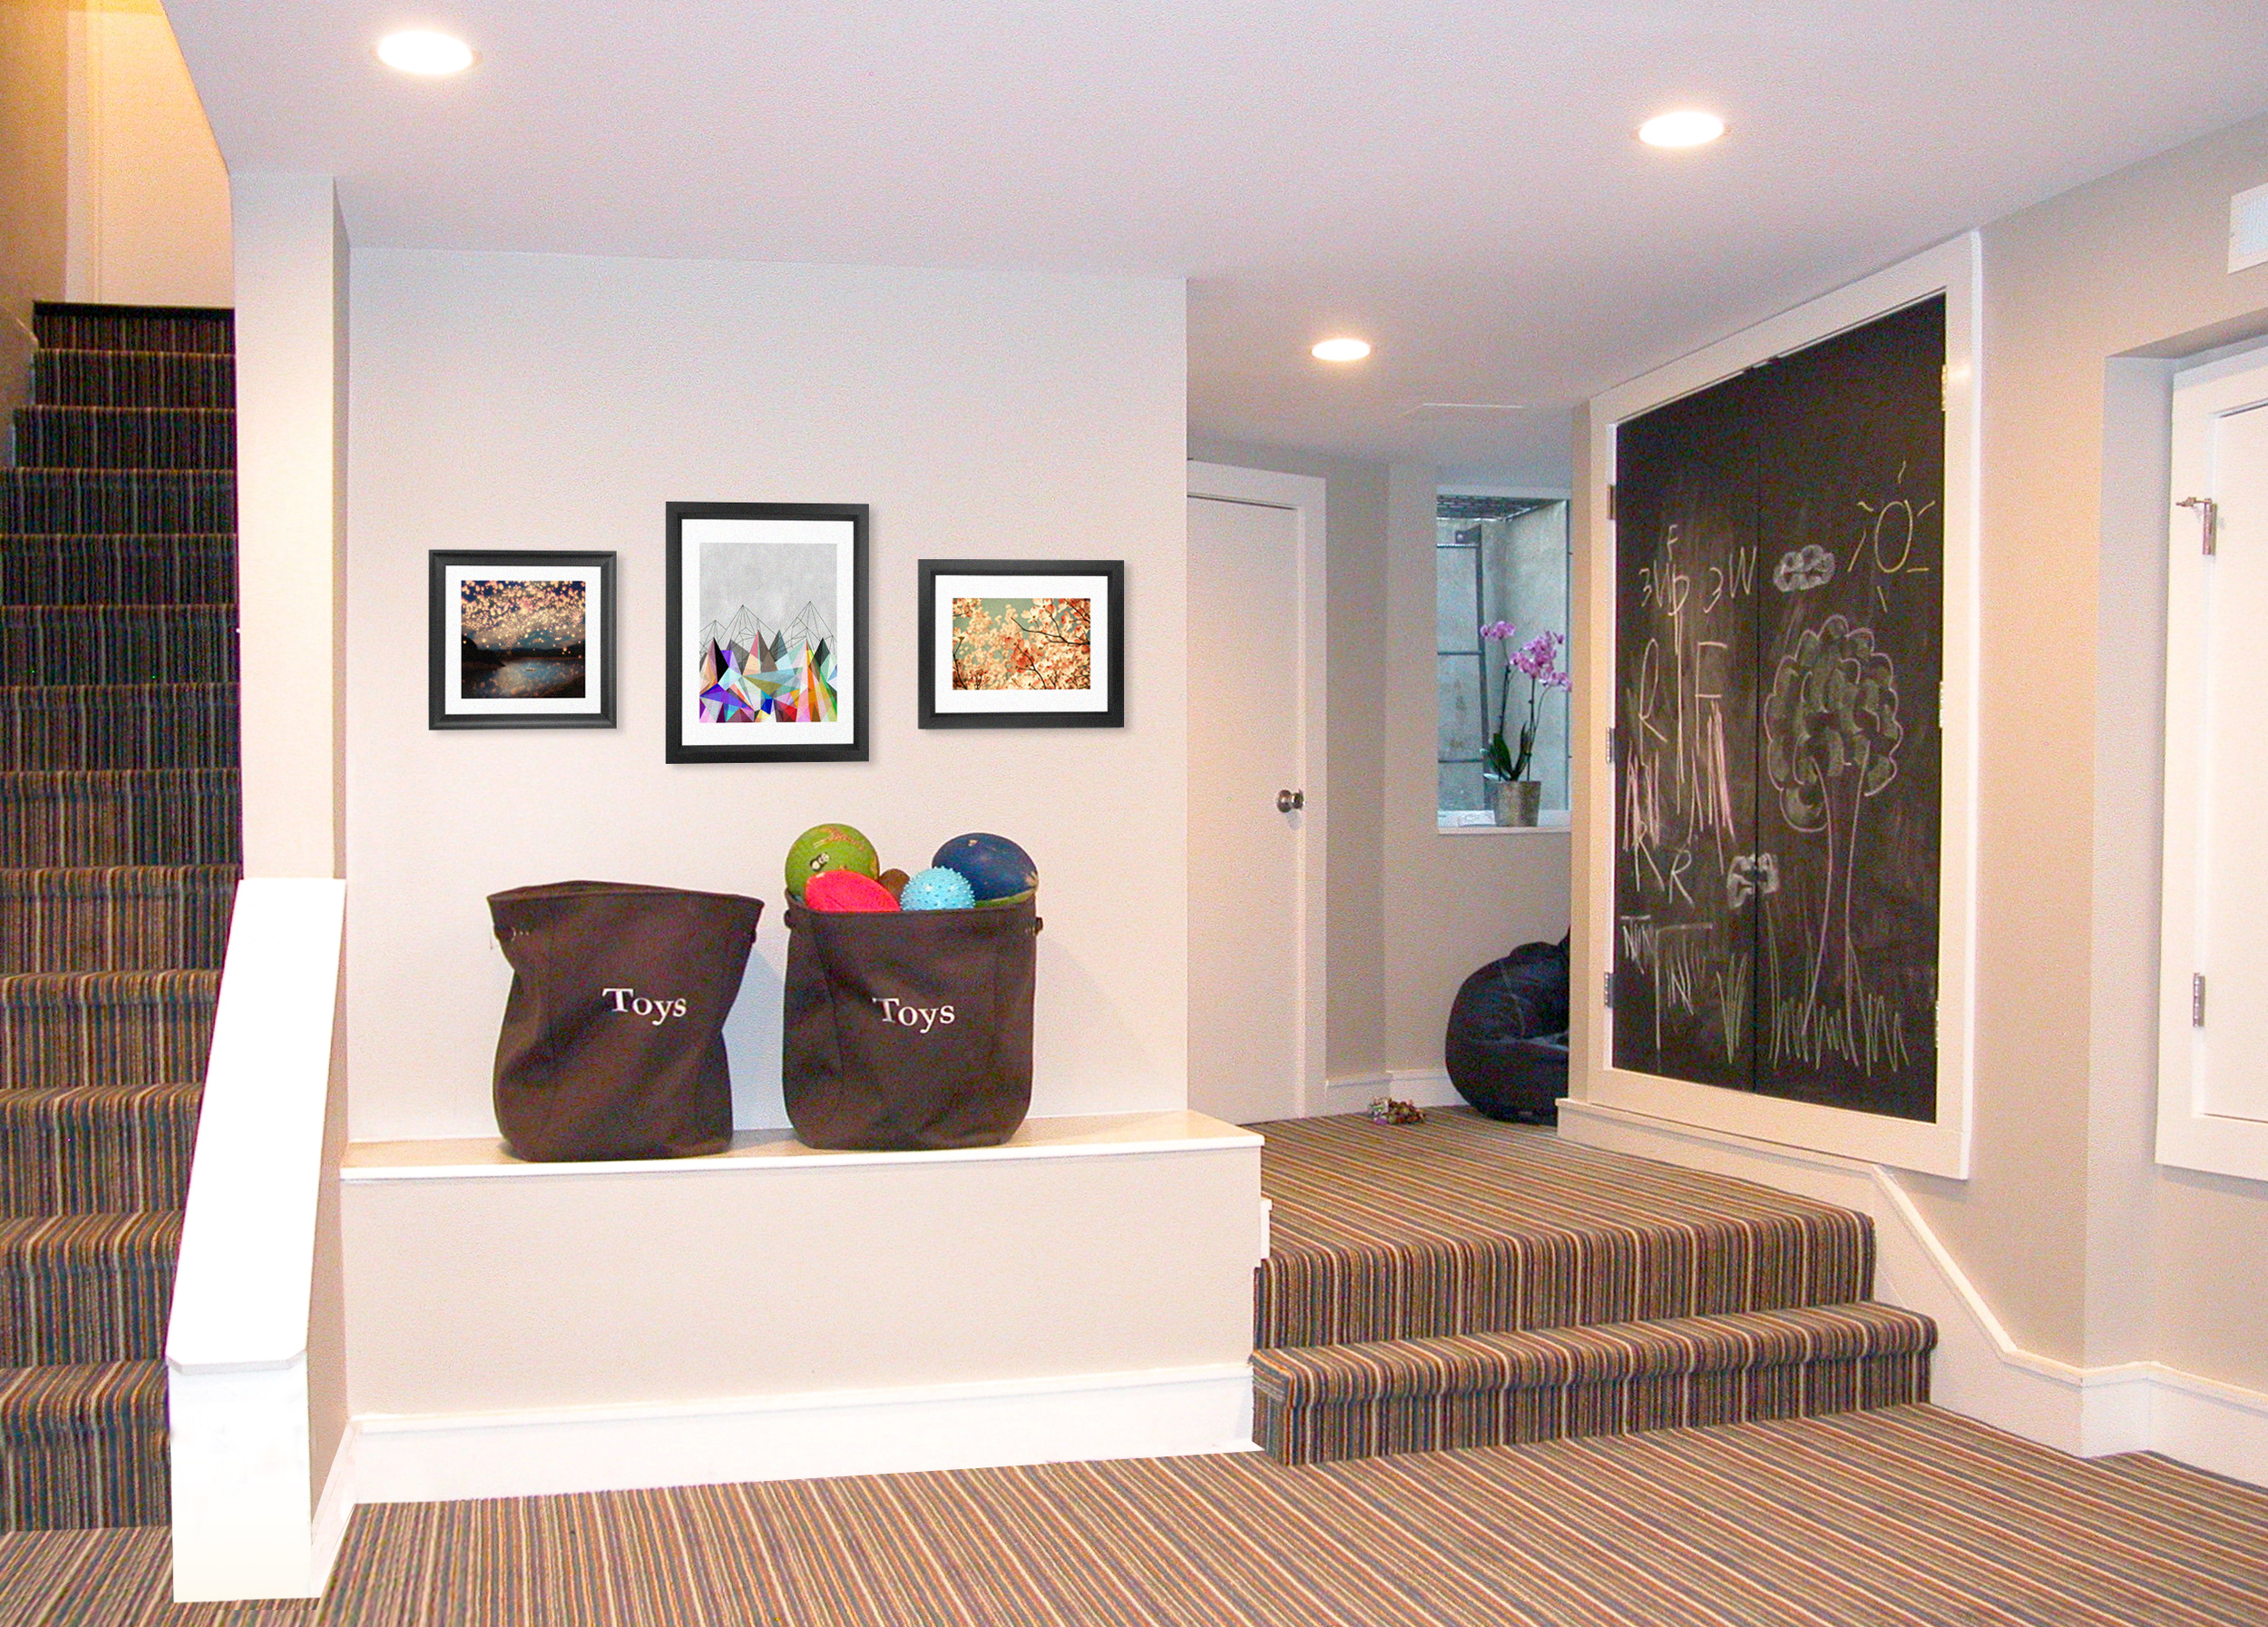 There is some serious headroom in this basement playroom.